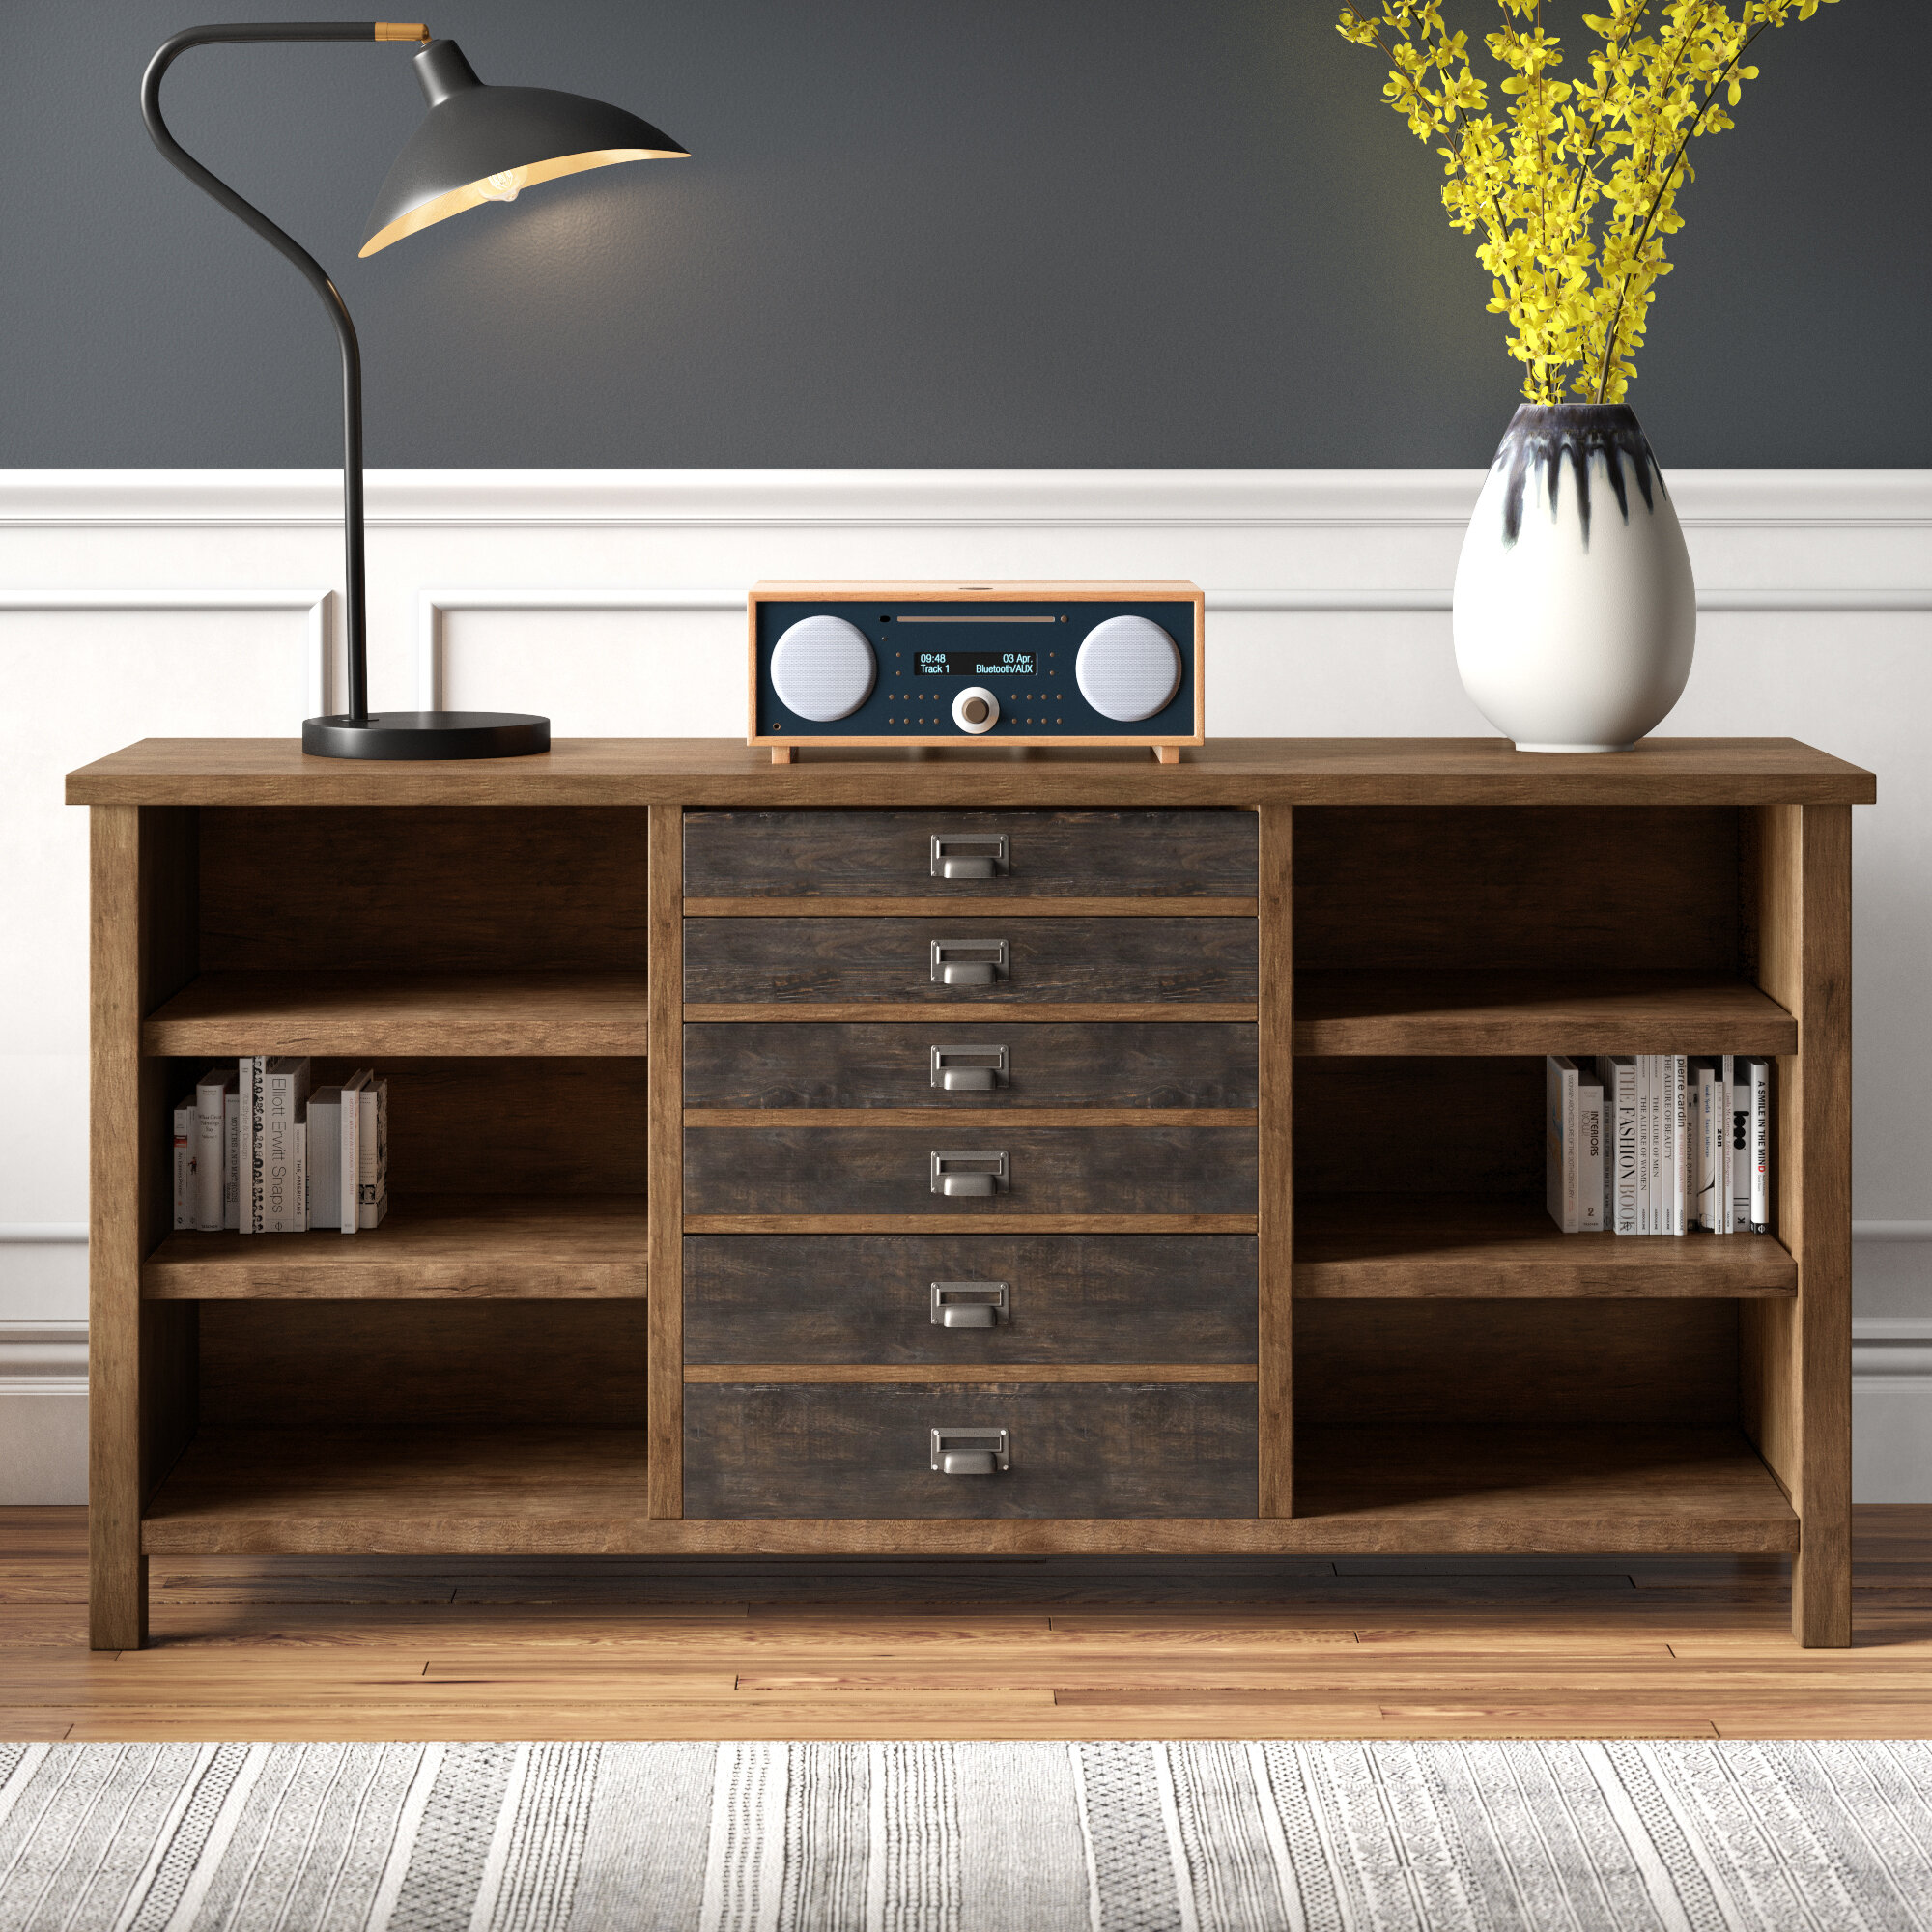 Wilmette Tv Stand For Tvs Up To 78 Inches Reviews Joss Main